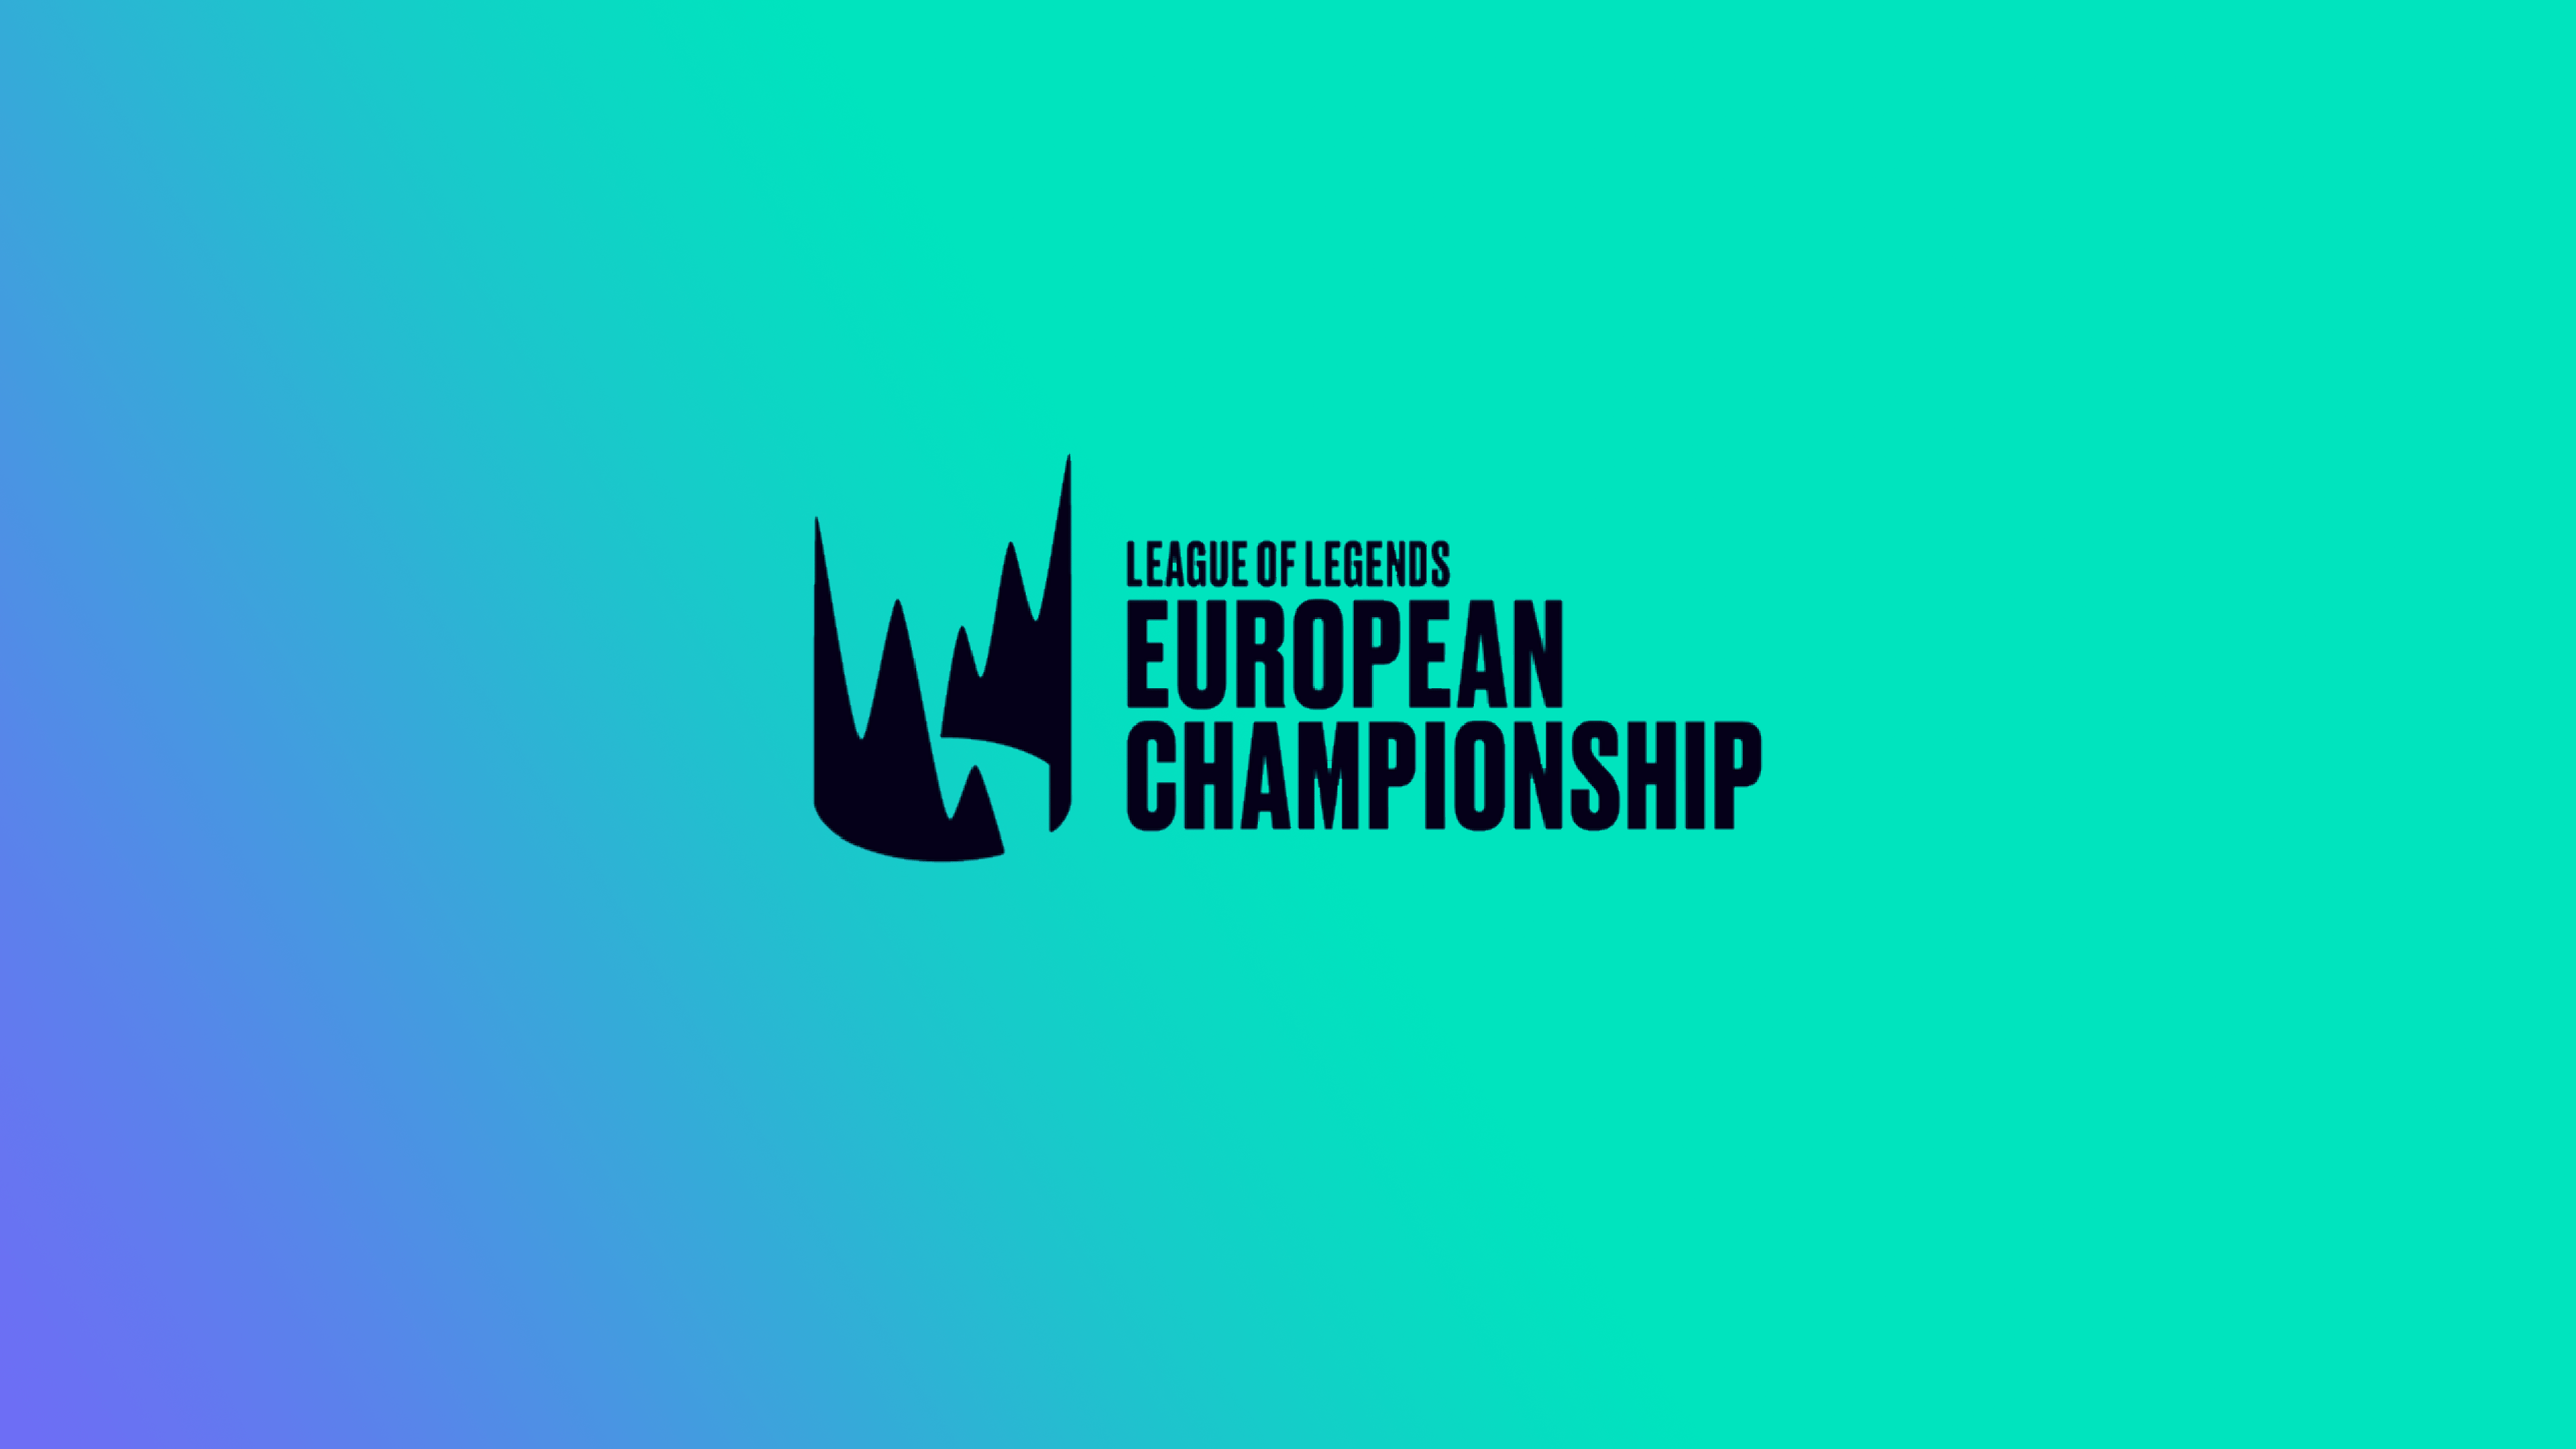 LEC – The Match Between Fnatic And Rogue Brought More Than 500,000 Unique Viewers To The LEC Broadcast